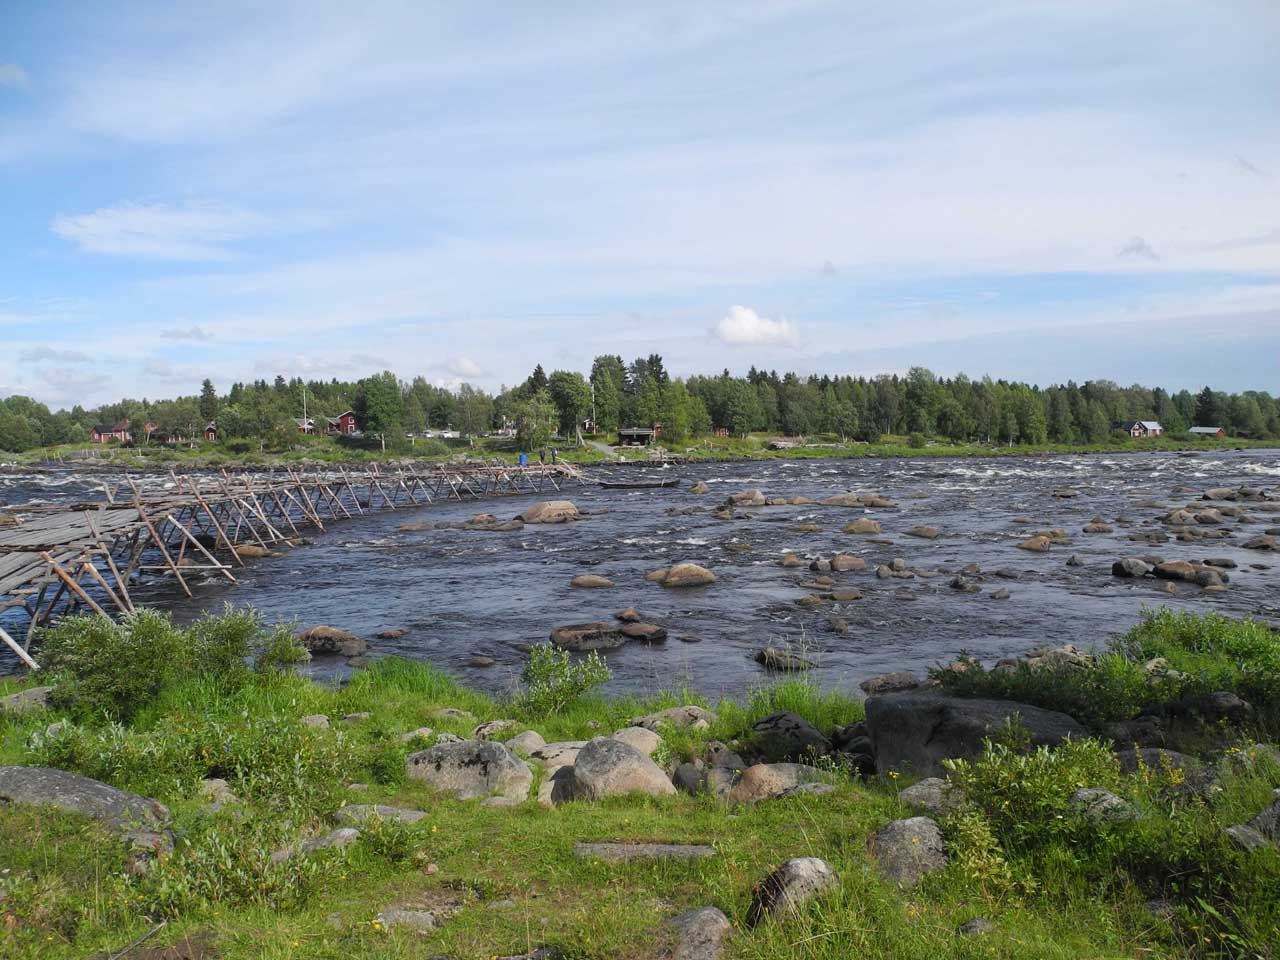 The Tornio River serves as the border of Finland and Sweden. It is managed by a binational commission, and it's not too warm for the spawning salmon.